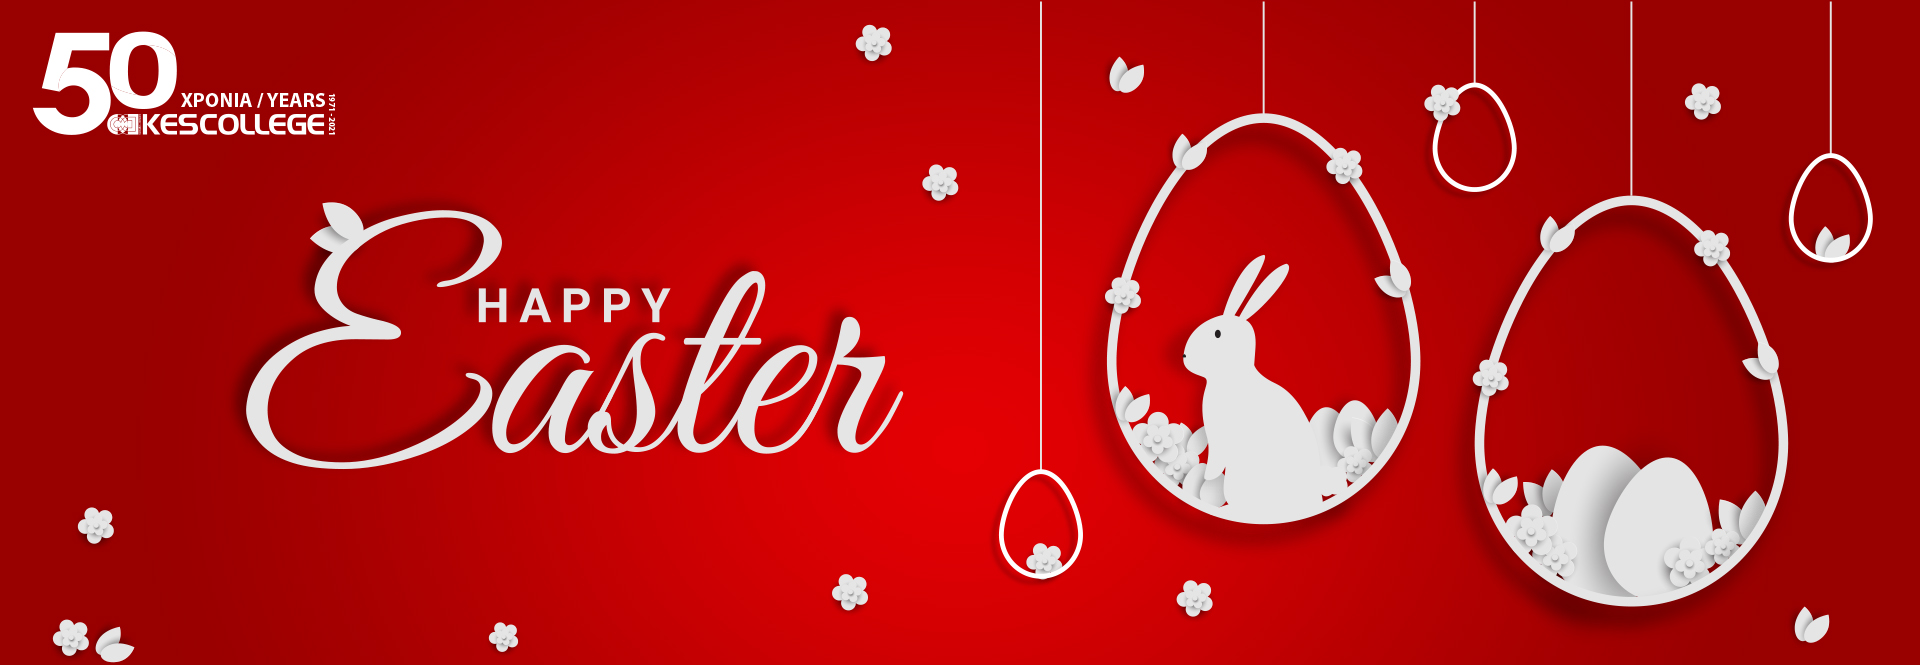 Happy Easter Wishes 1920x665